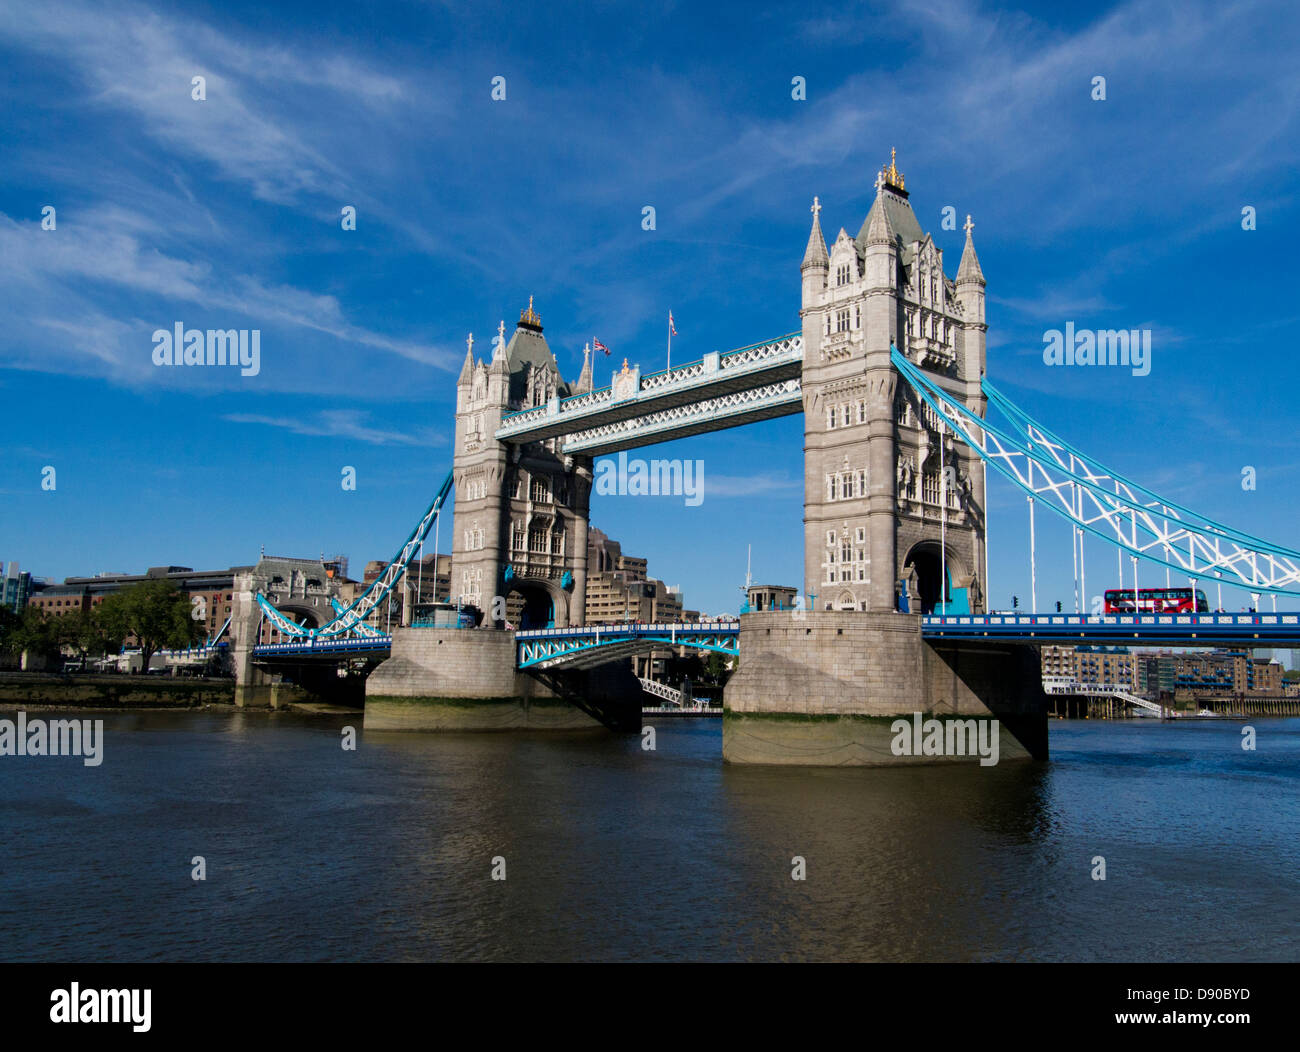 Tower Bridge over the River Thames, London, UK Stock Photo